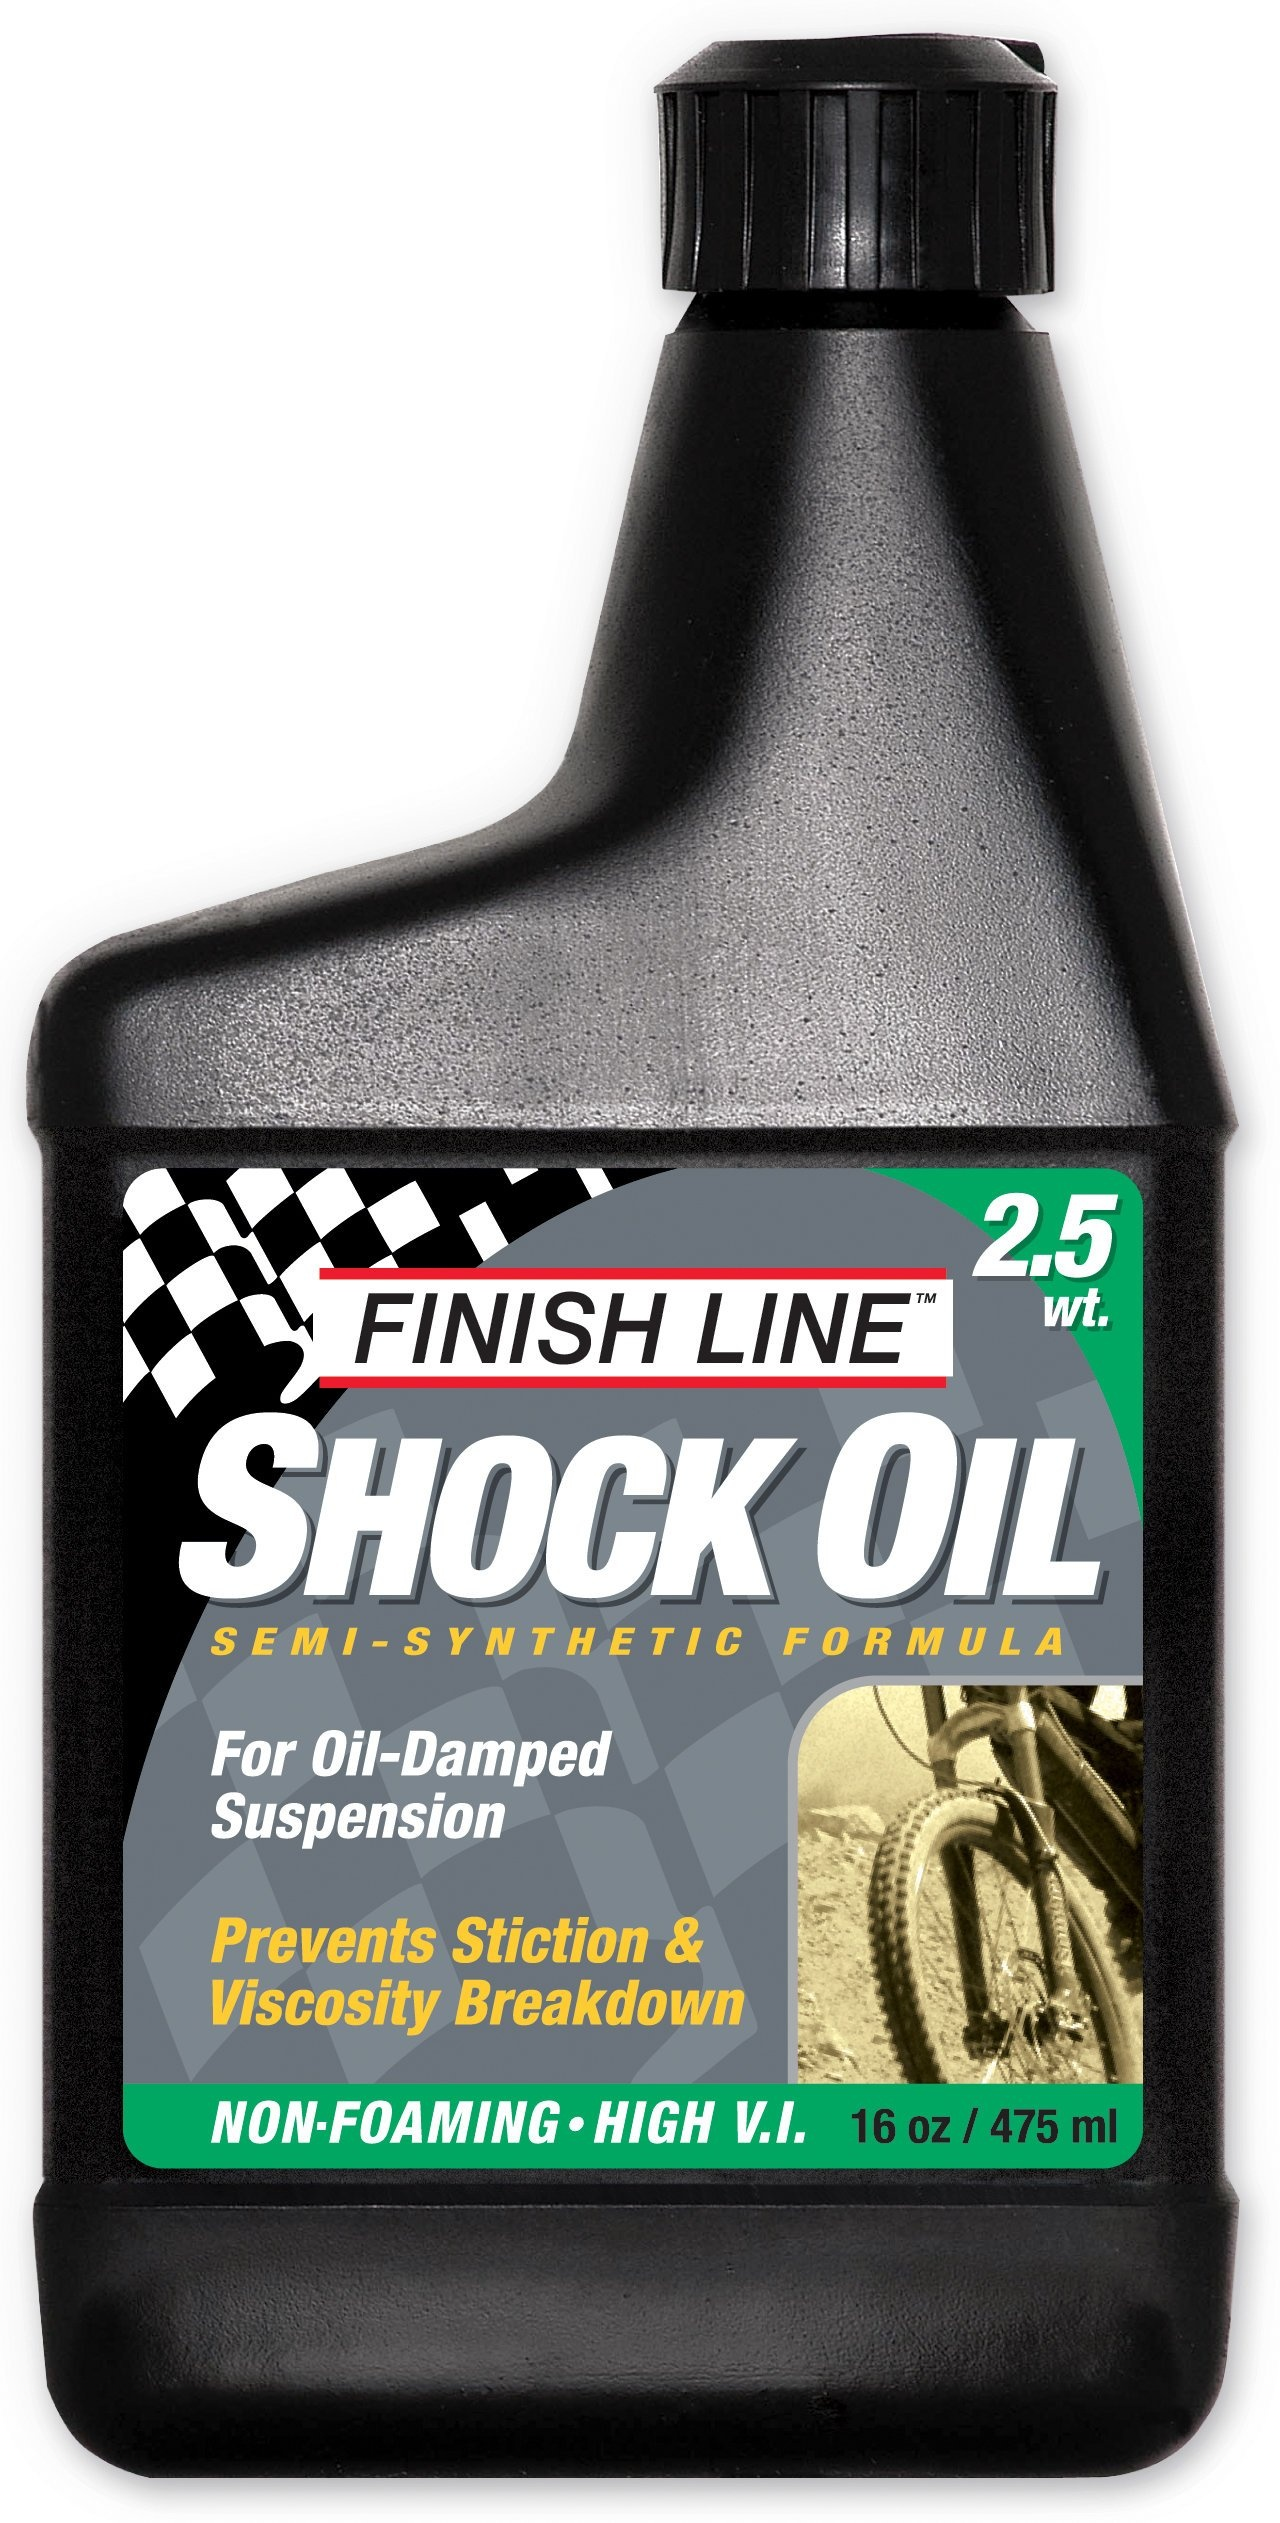 Finish Line Shock Oil Forgaffelolie 2.5wt